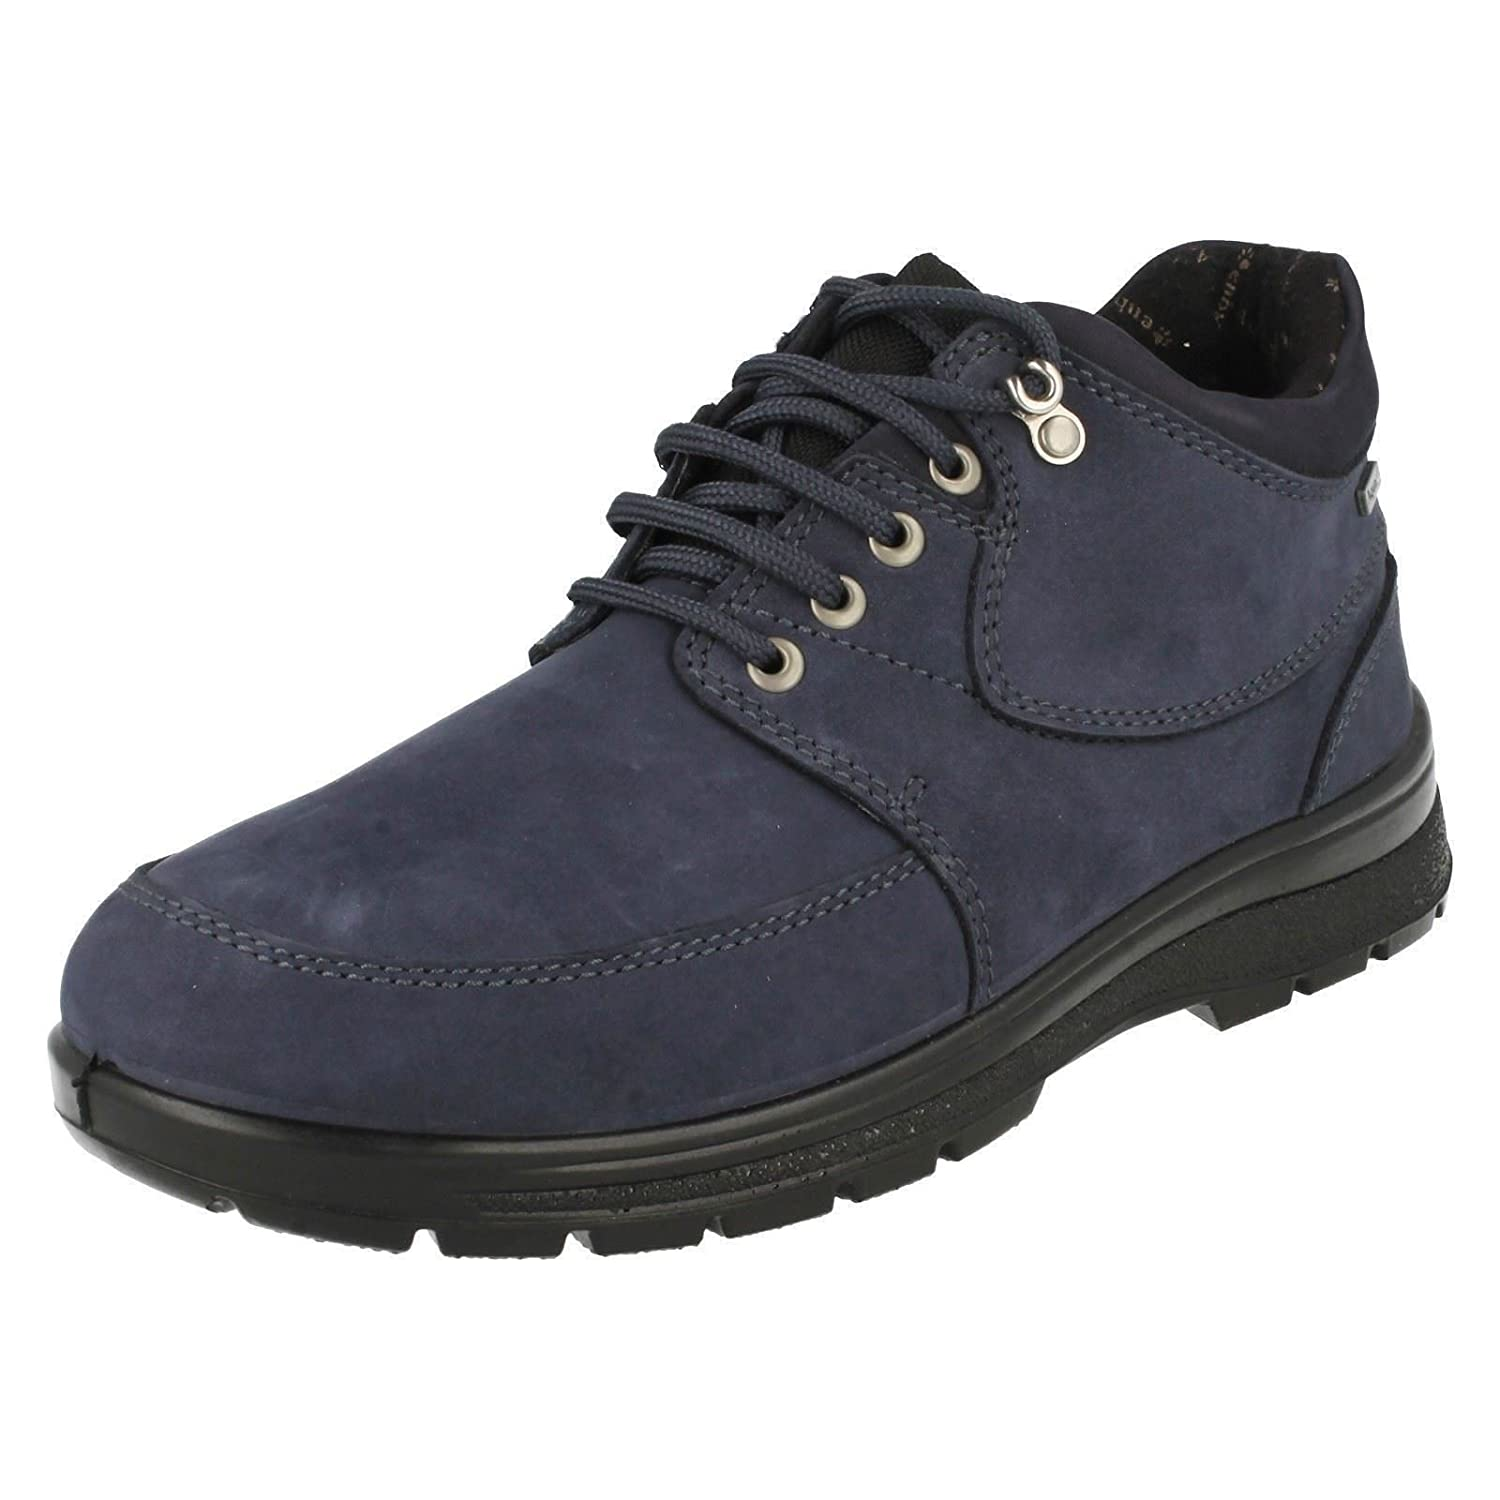 564ceffbe95a Padders Summit Womens Waterproof Ankle Boots  Amazon.co.uk  Shoes   Bags